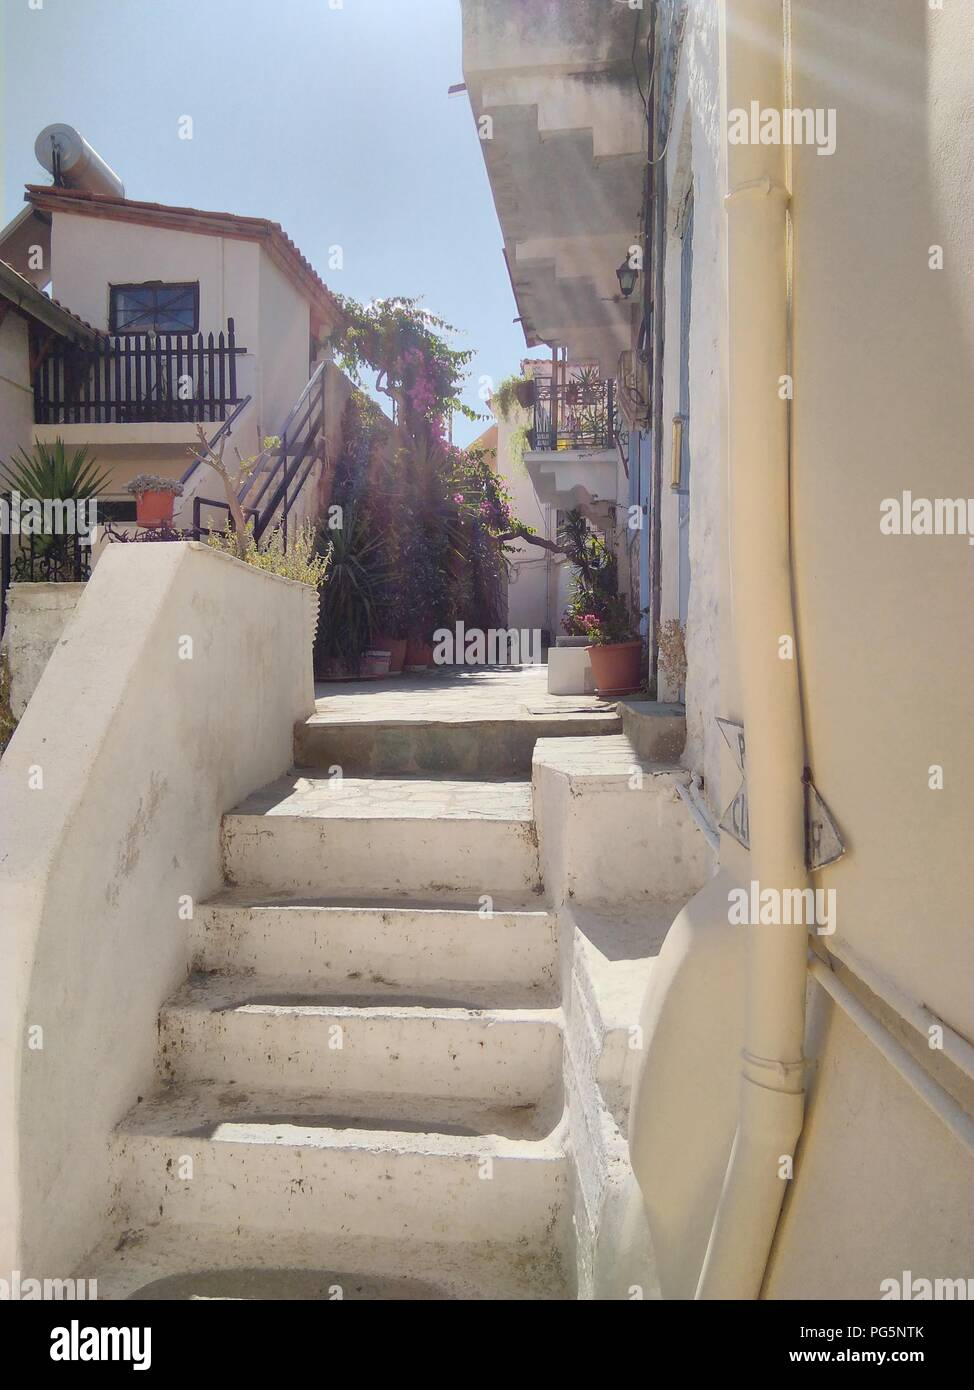 Greece, the island of Poros near Athens.  The old town. Steep whitewashed staircases - Stock Image